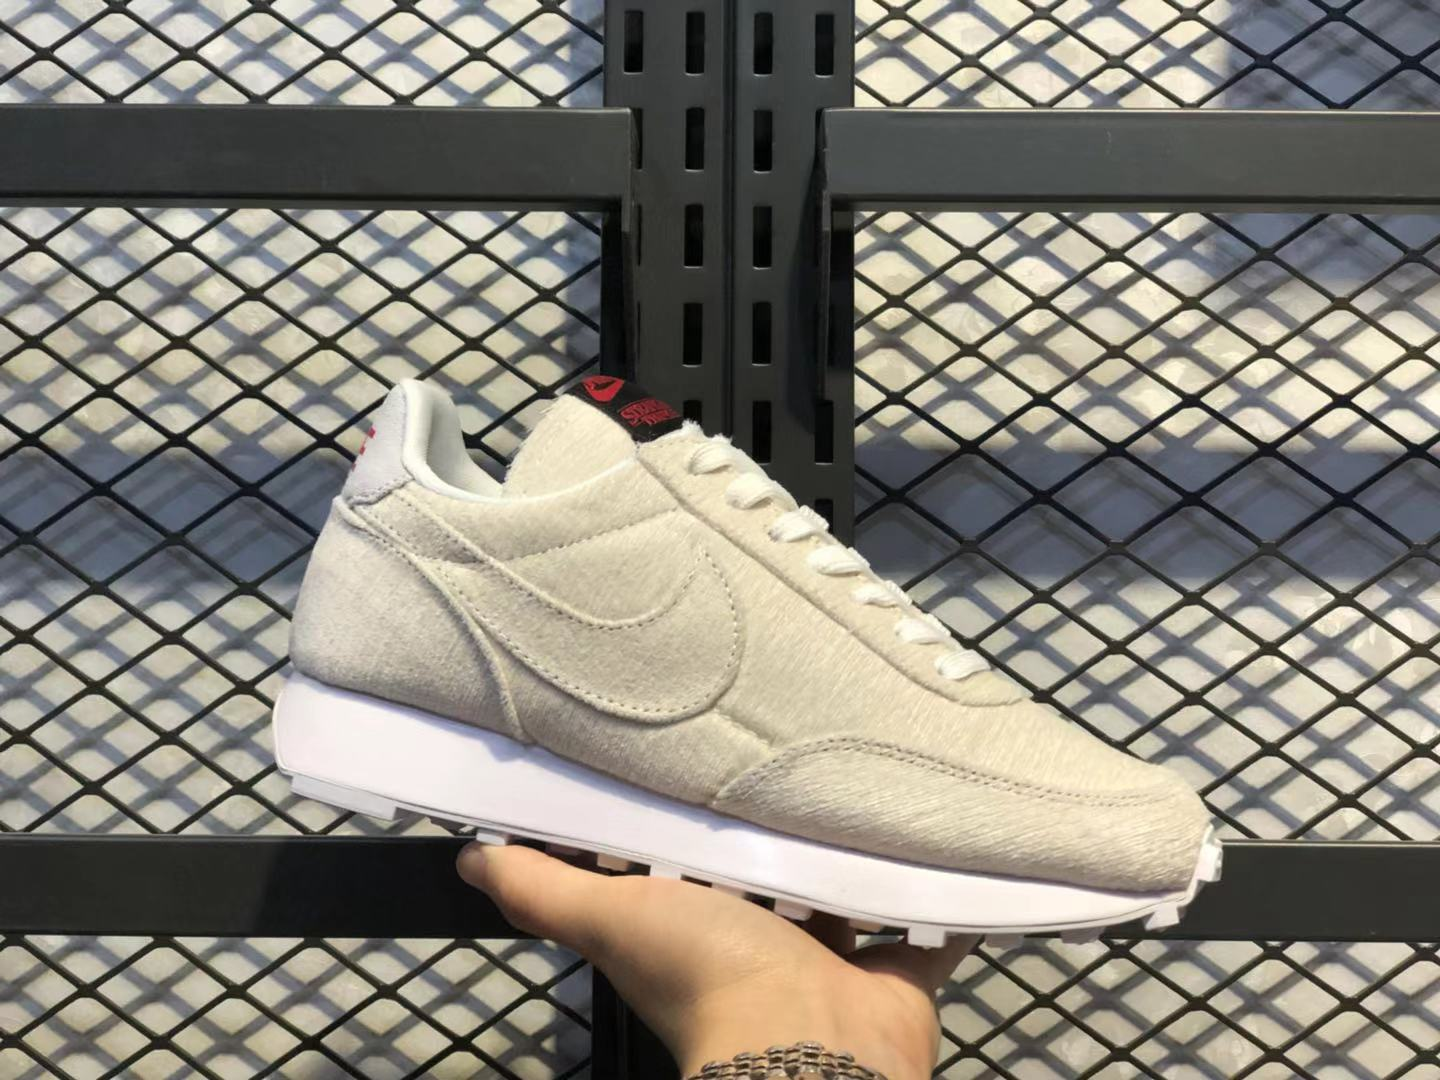 Stranger Things x Nike Tailwind UD Sail/Sail Casual Shoes Cheap Price